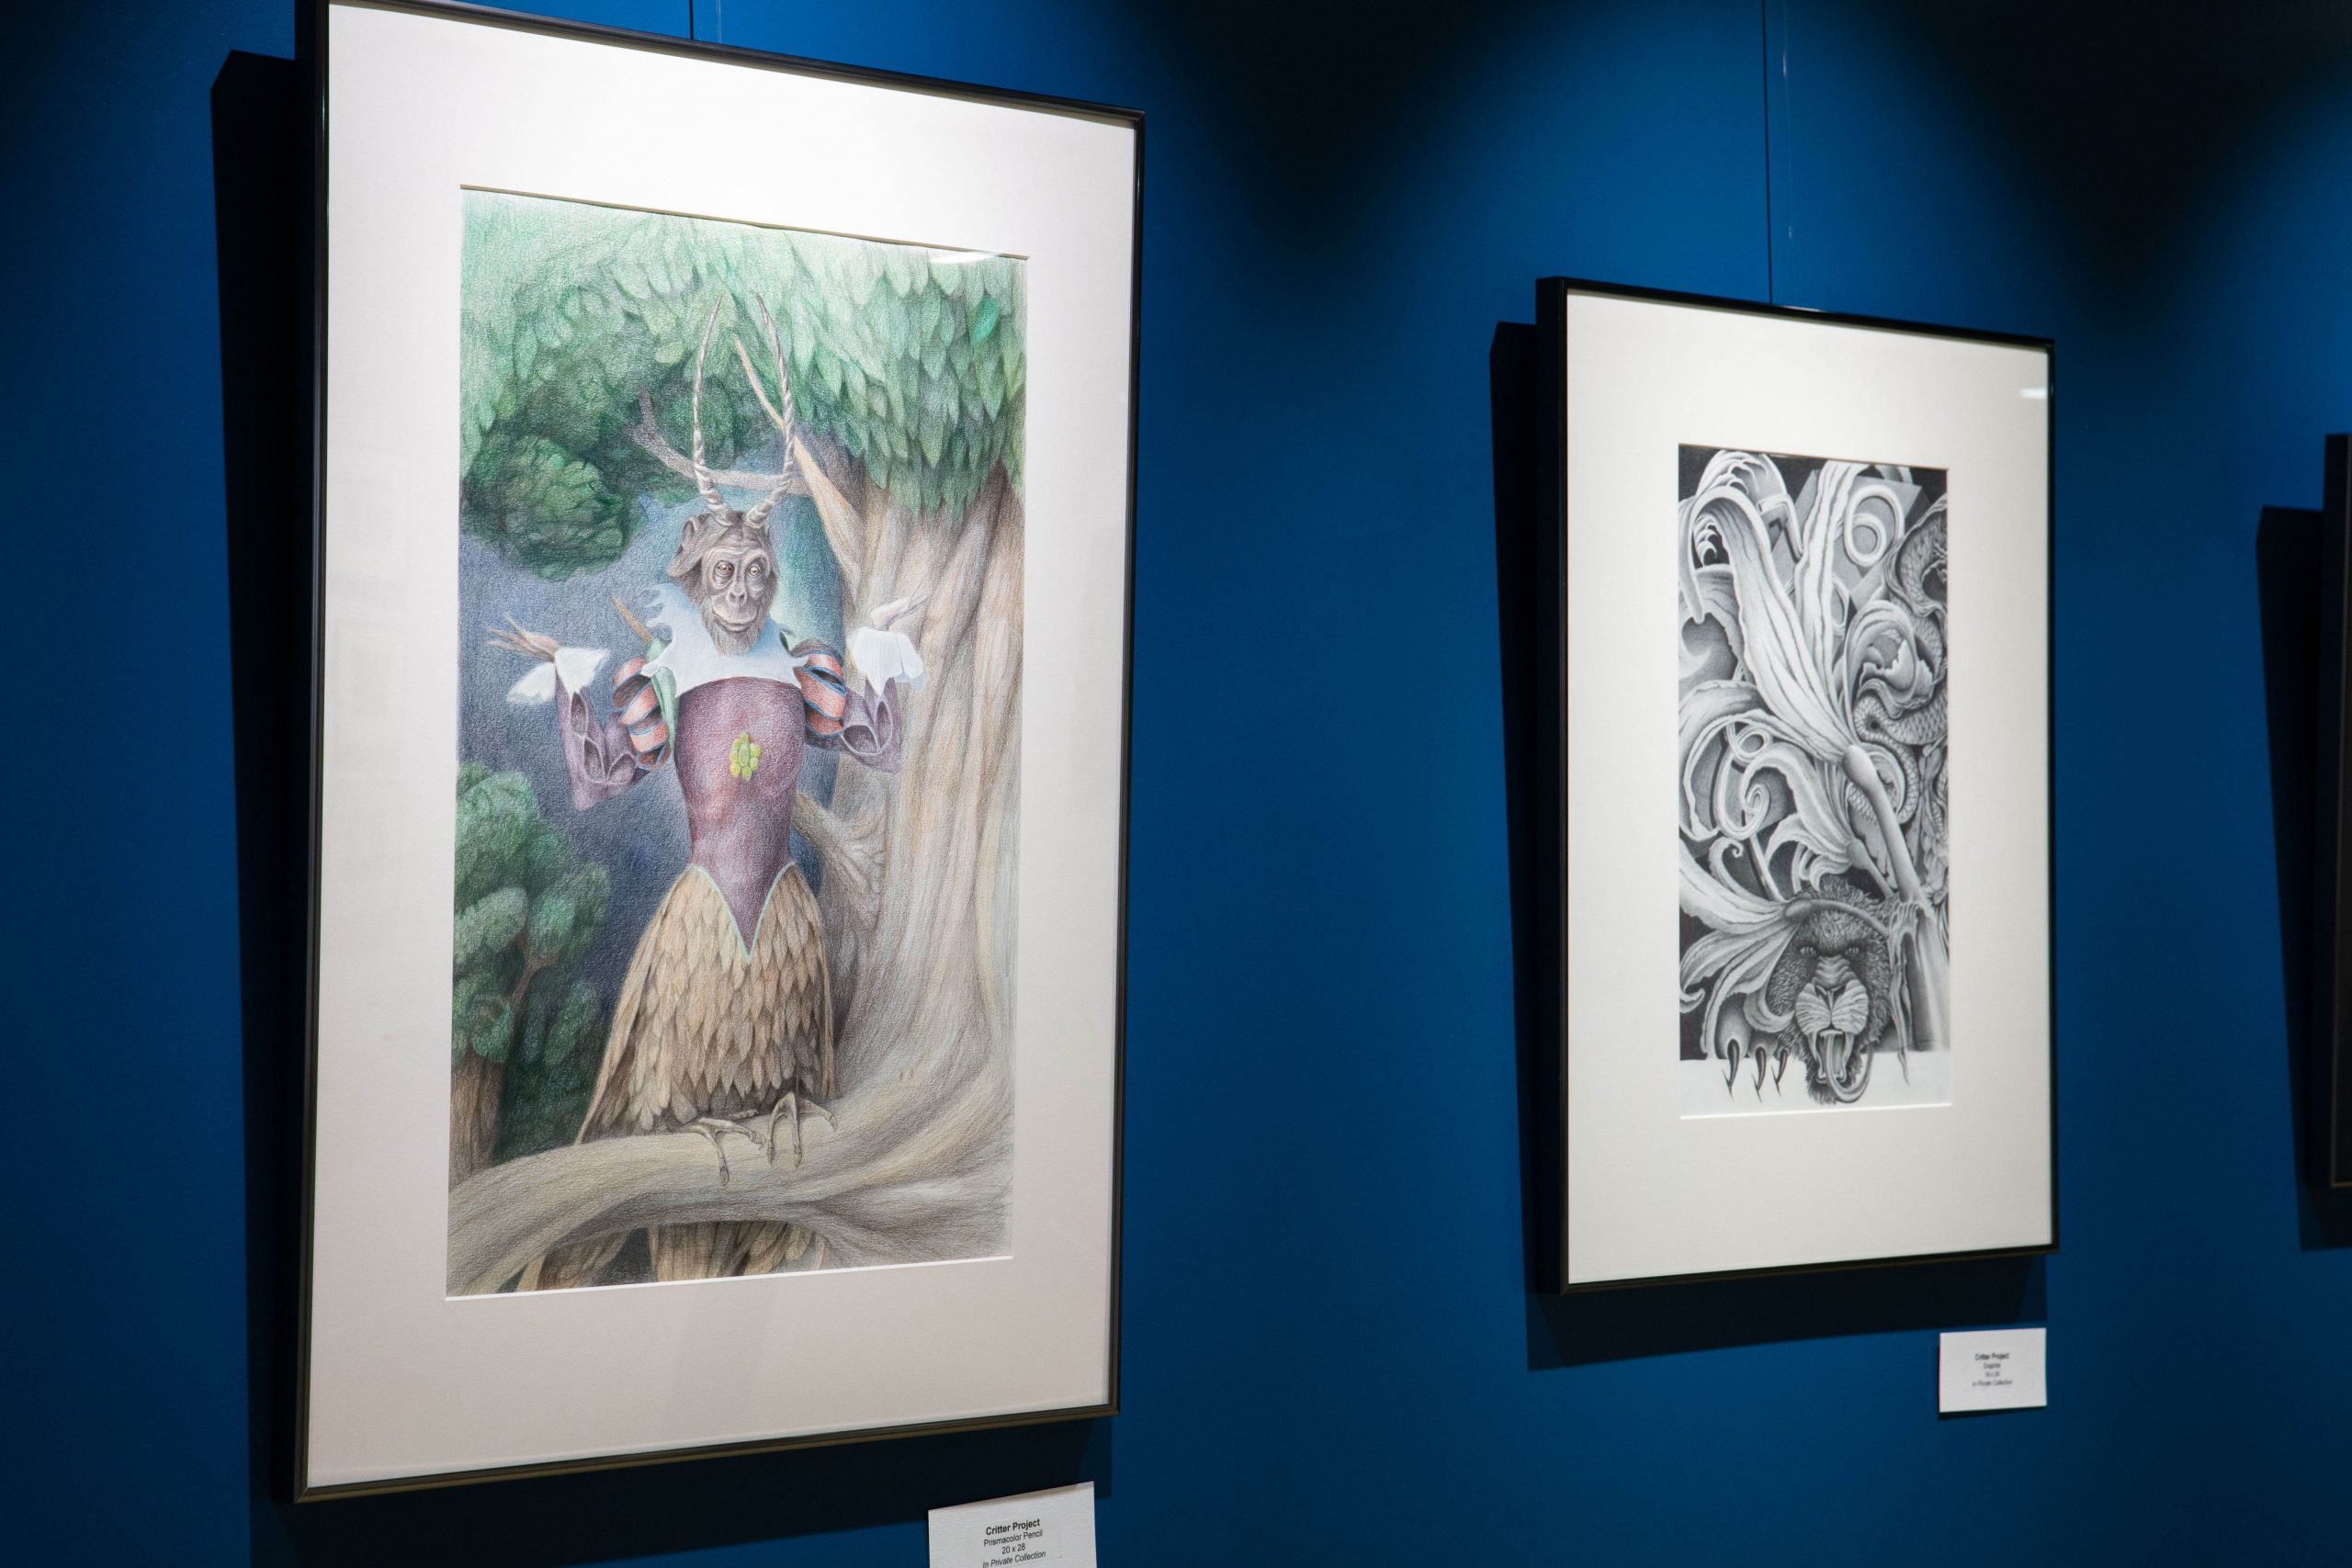 Artwork produced by inmates is displayed at a museum.